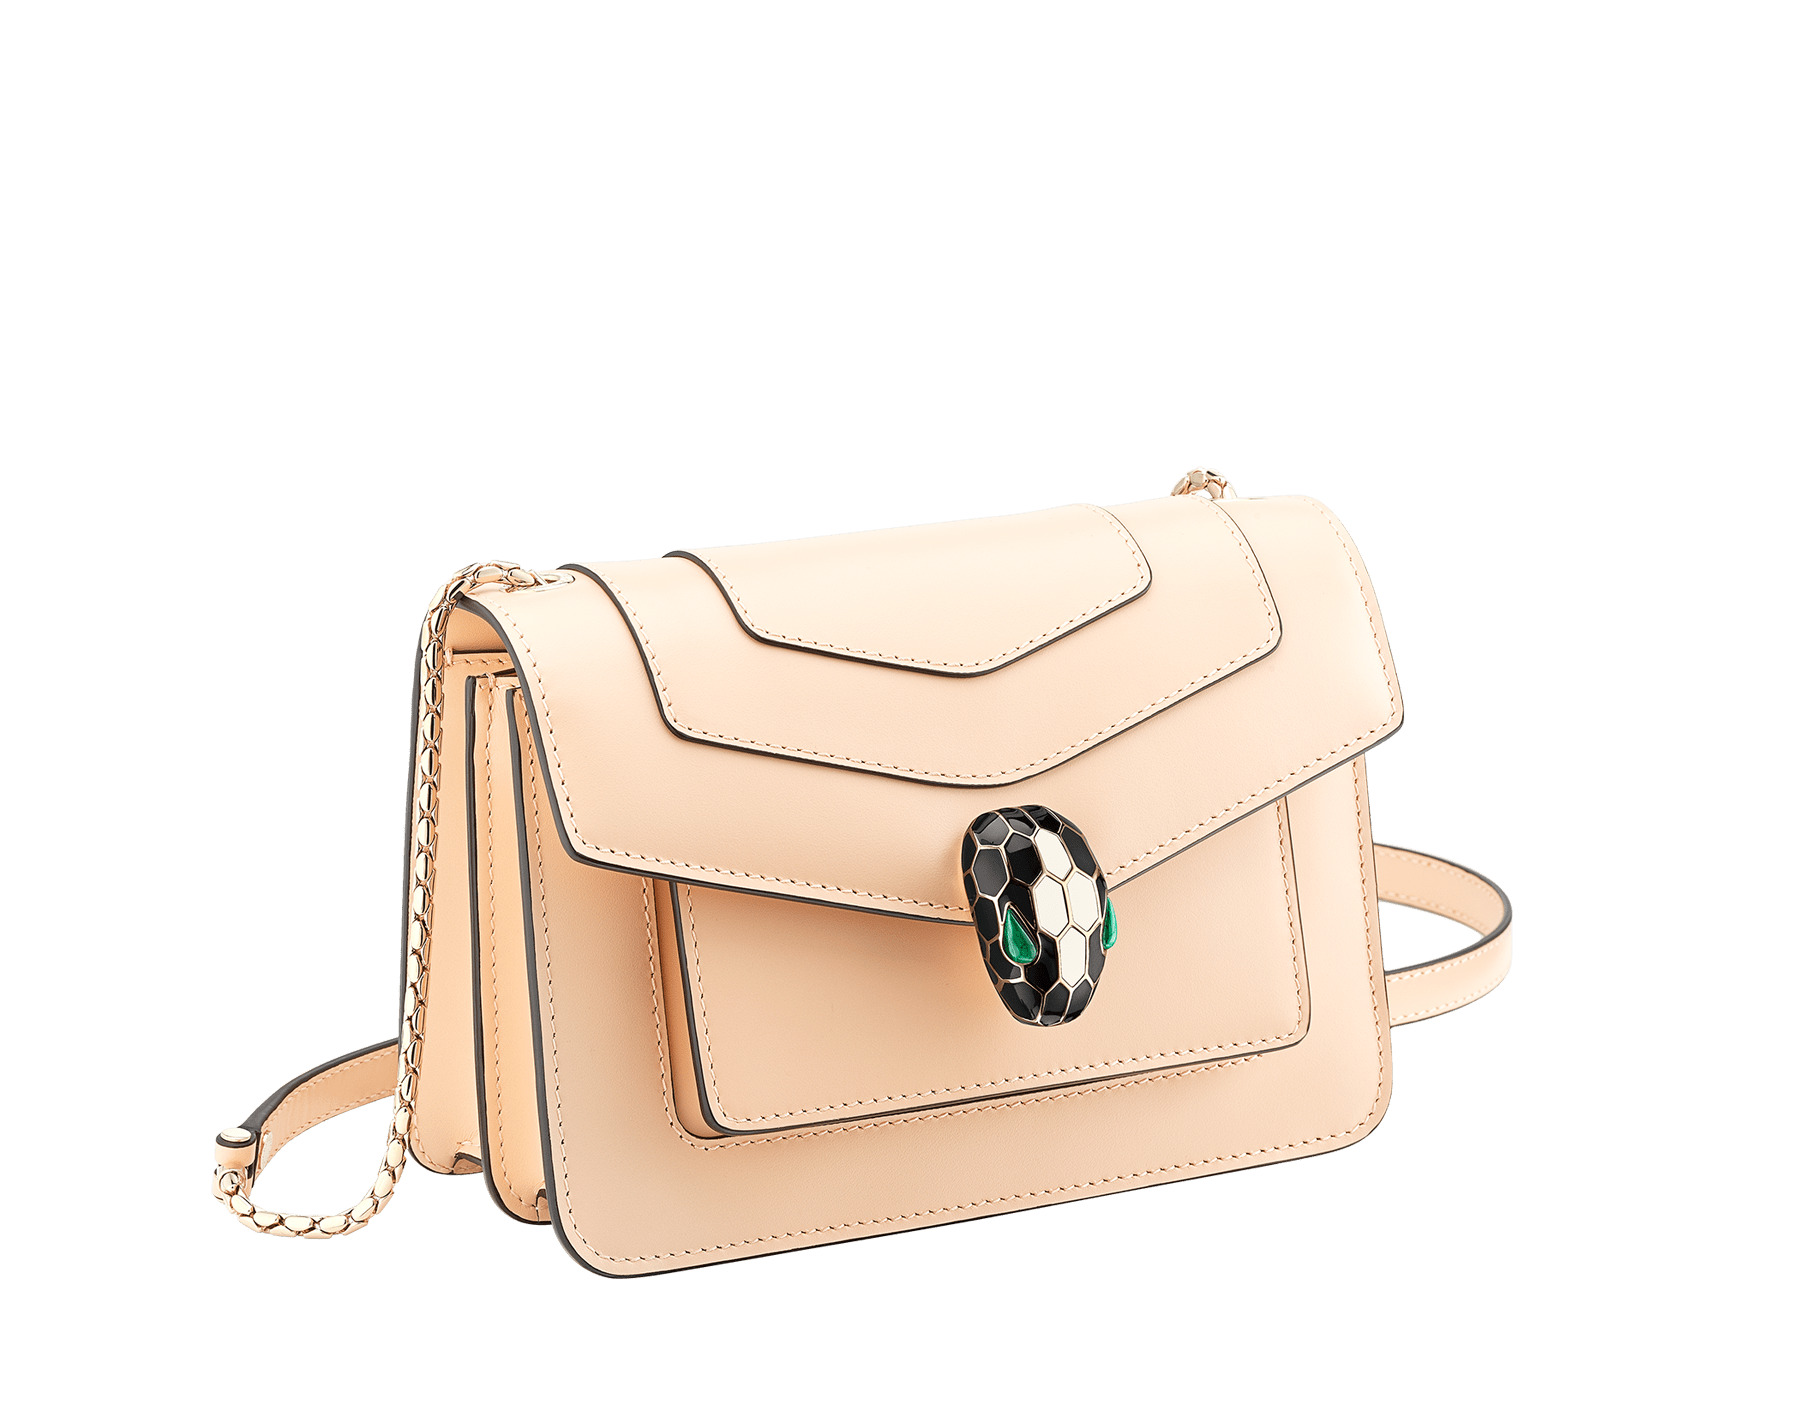 """Serpenti Forever"" crossbody bag in mint calf leather. Iconic snakehead closure in light gold plated brass enriched with black and white agate enamel and green malachite eyes. 1082-CLb image 2"